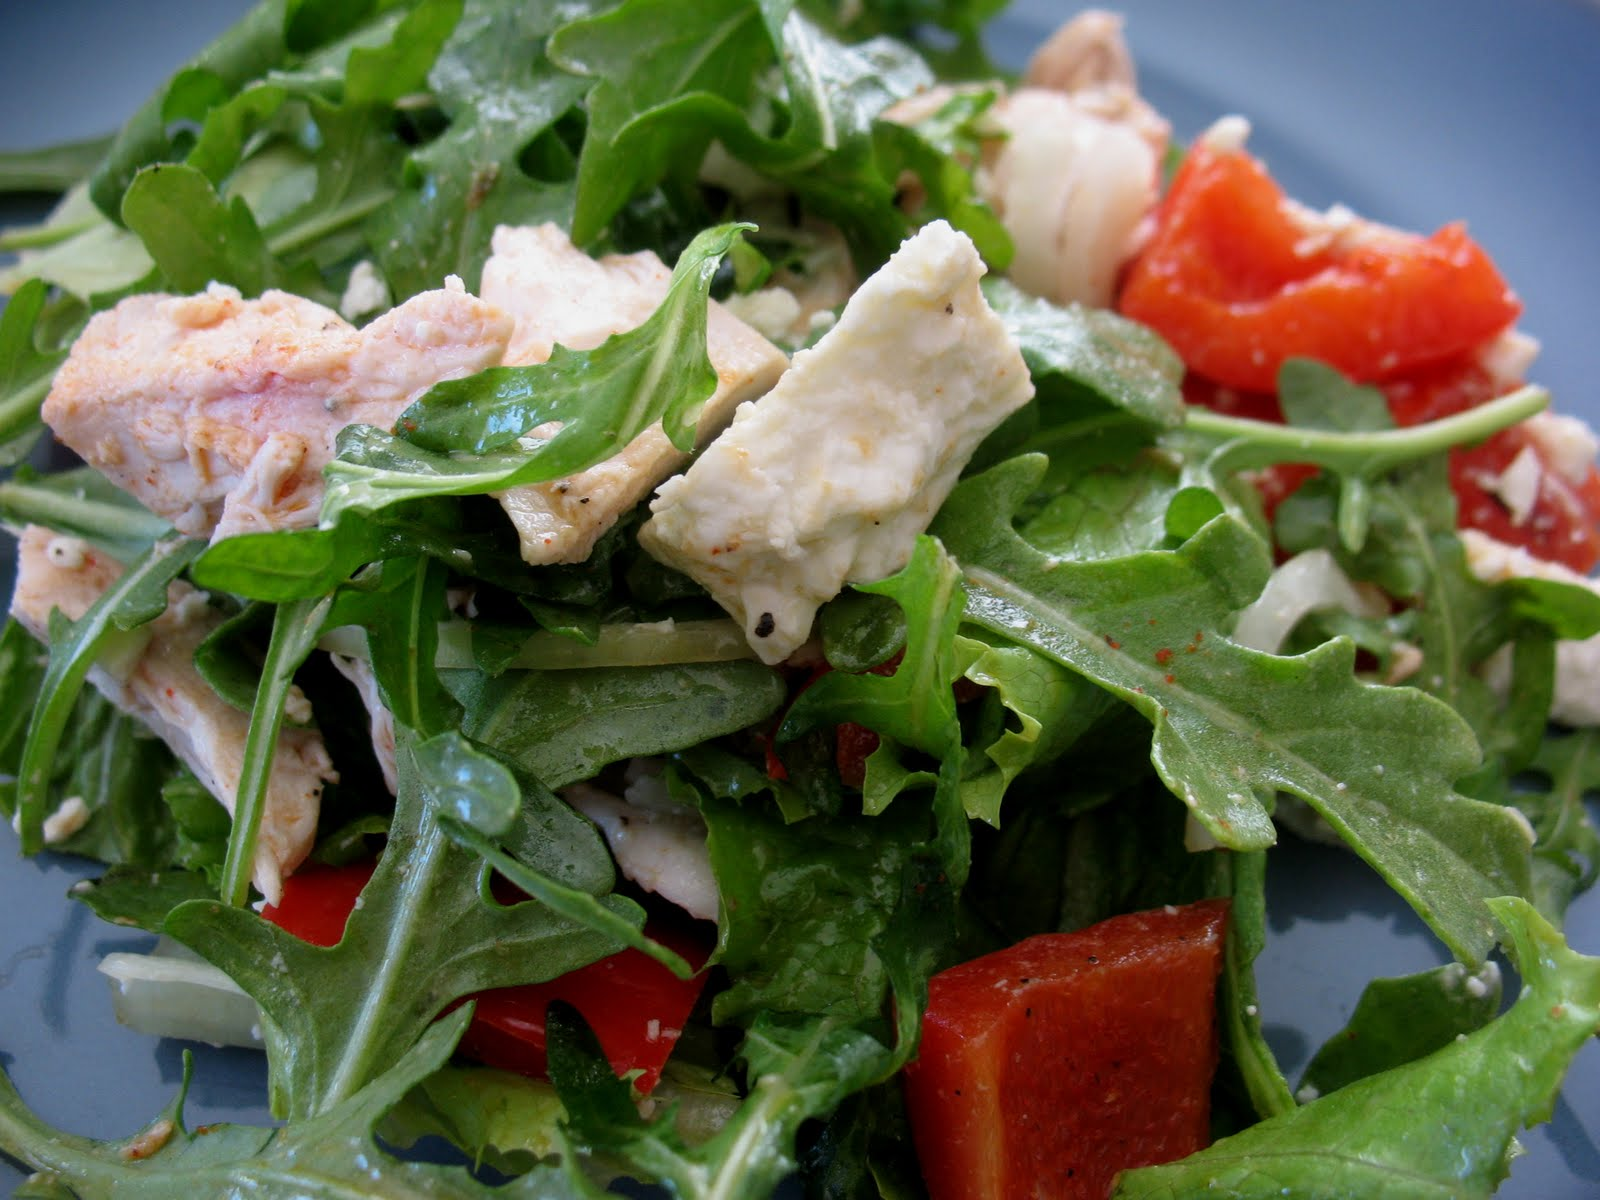 ... chicken salad, with potatoes, roasted red peppers and peas. Serves 6